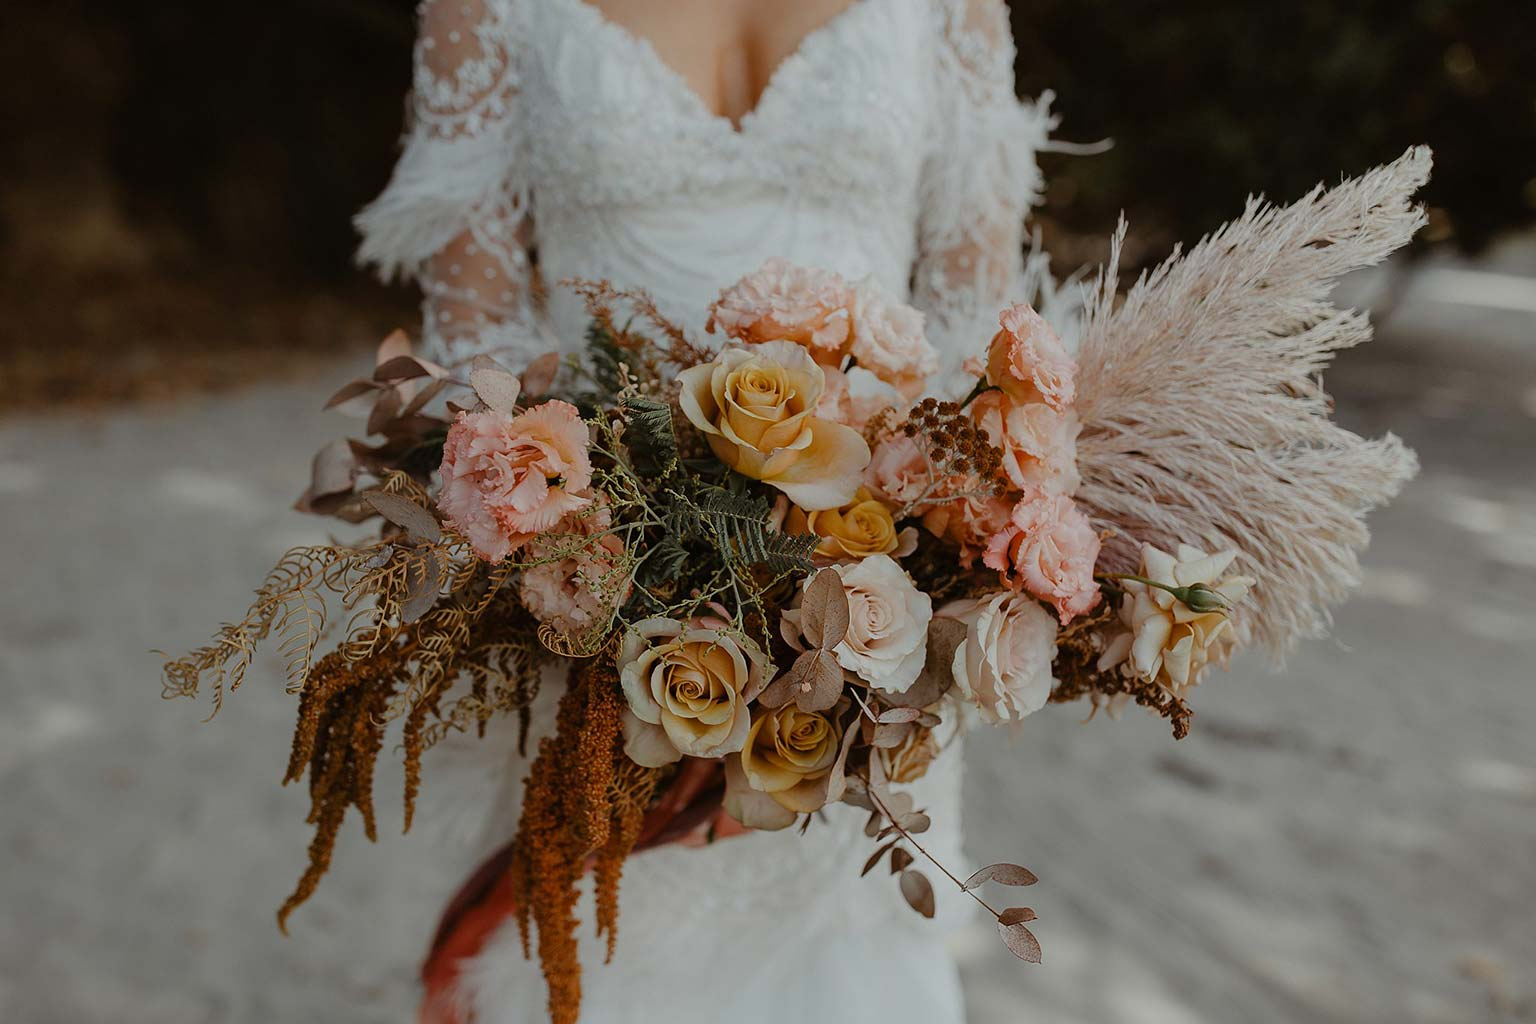 Vinka Design Features Real Weddings - bride wearing beautiful silk and tulle Chanel wedding dress from the Heart of Havana Collection with added underskirt posing with flower bouquet